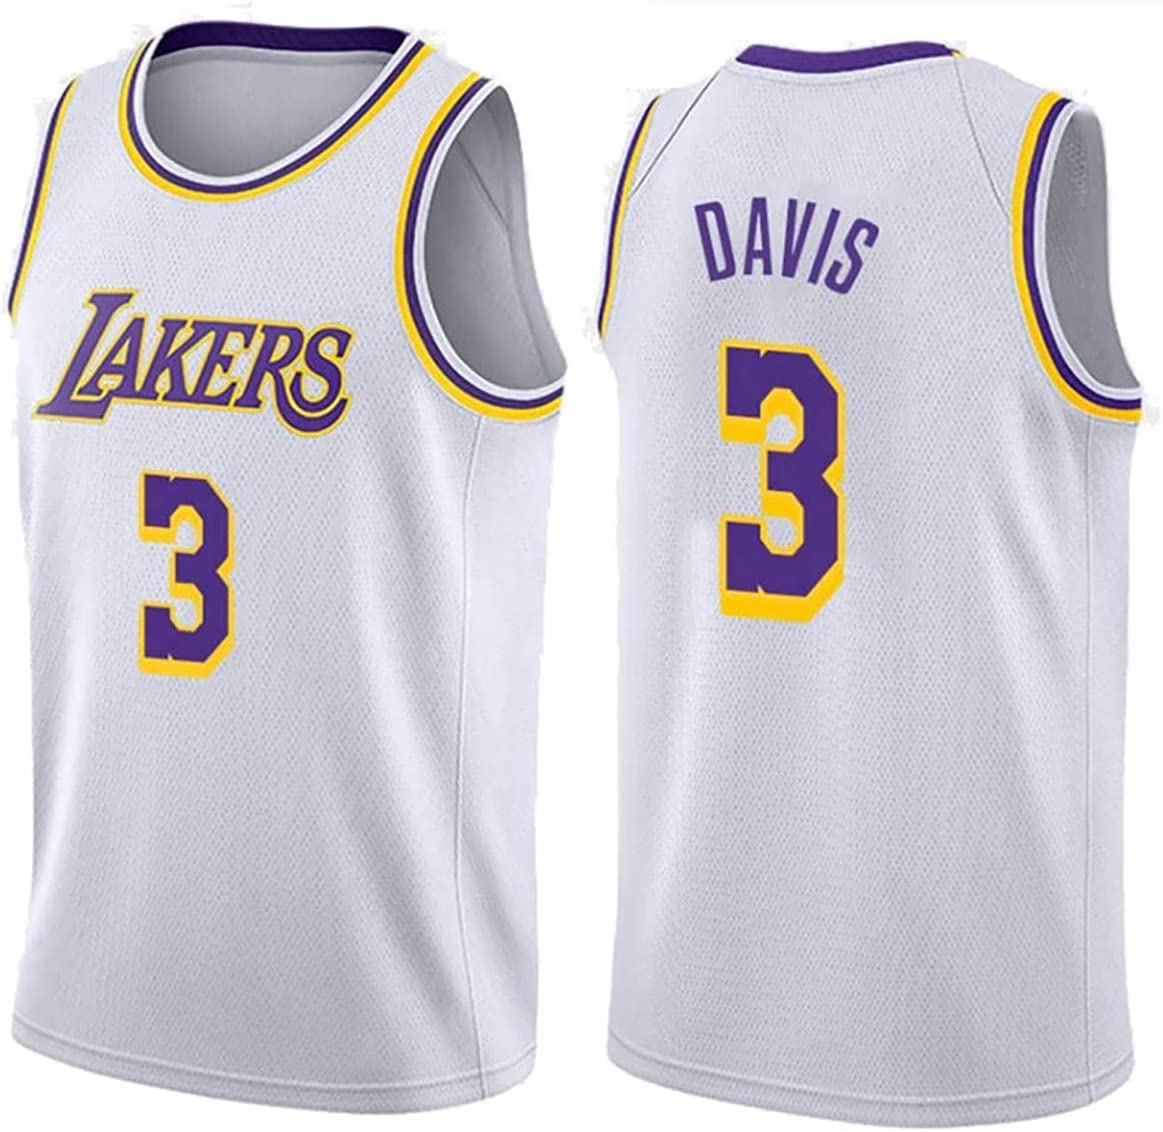 3 Davis Embroidery Basketball Vest Summer Mens Basketball Jersey No Breathable and Quick-Drying mesh Basketball Shirt-White-XXL